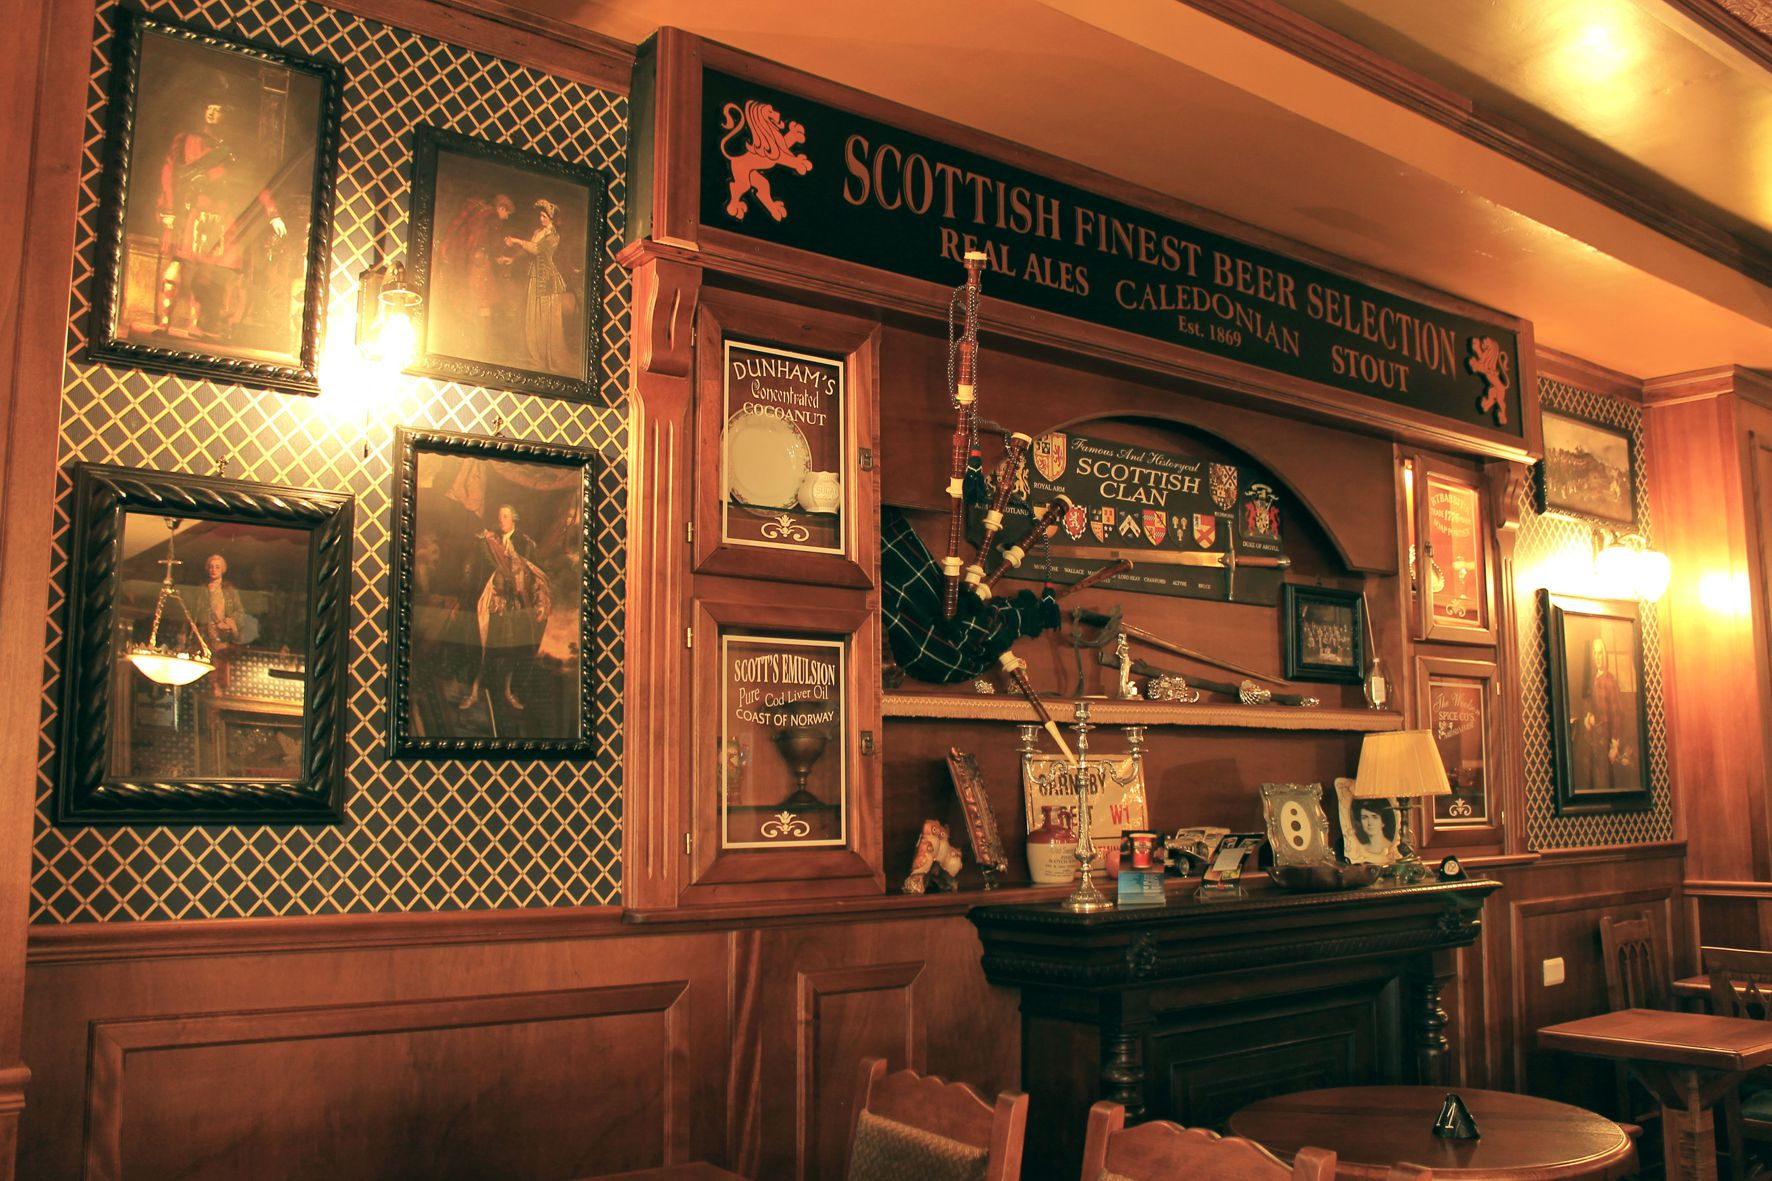 Arredamento pub stile scottish camproject for Arredamento per pub